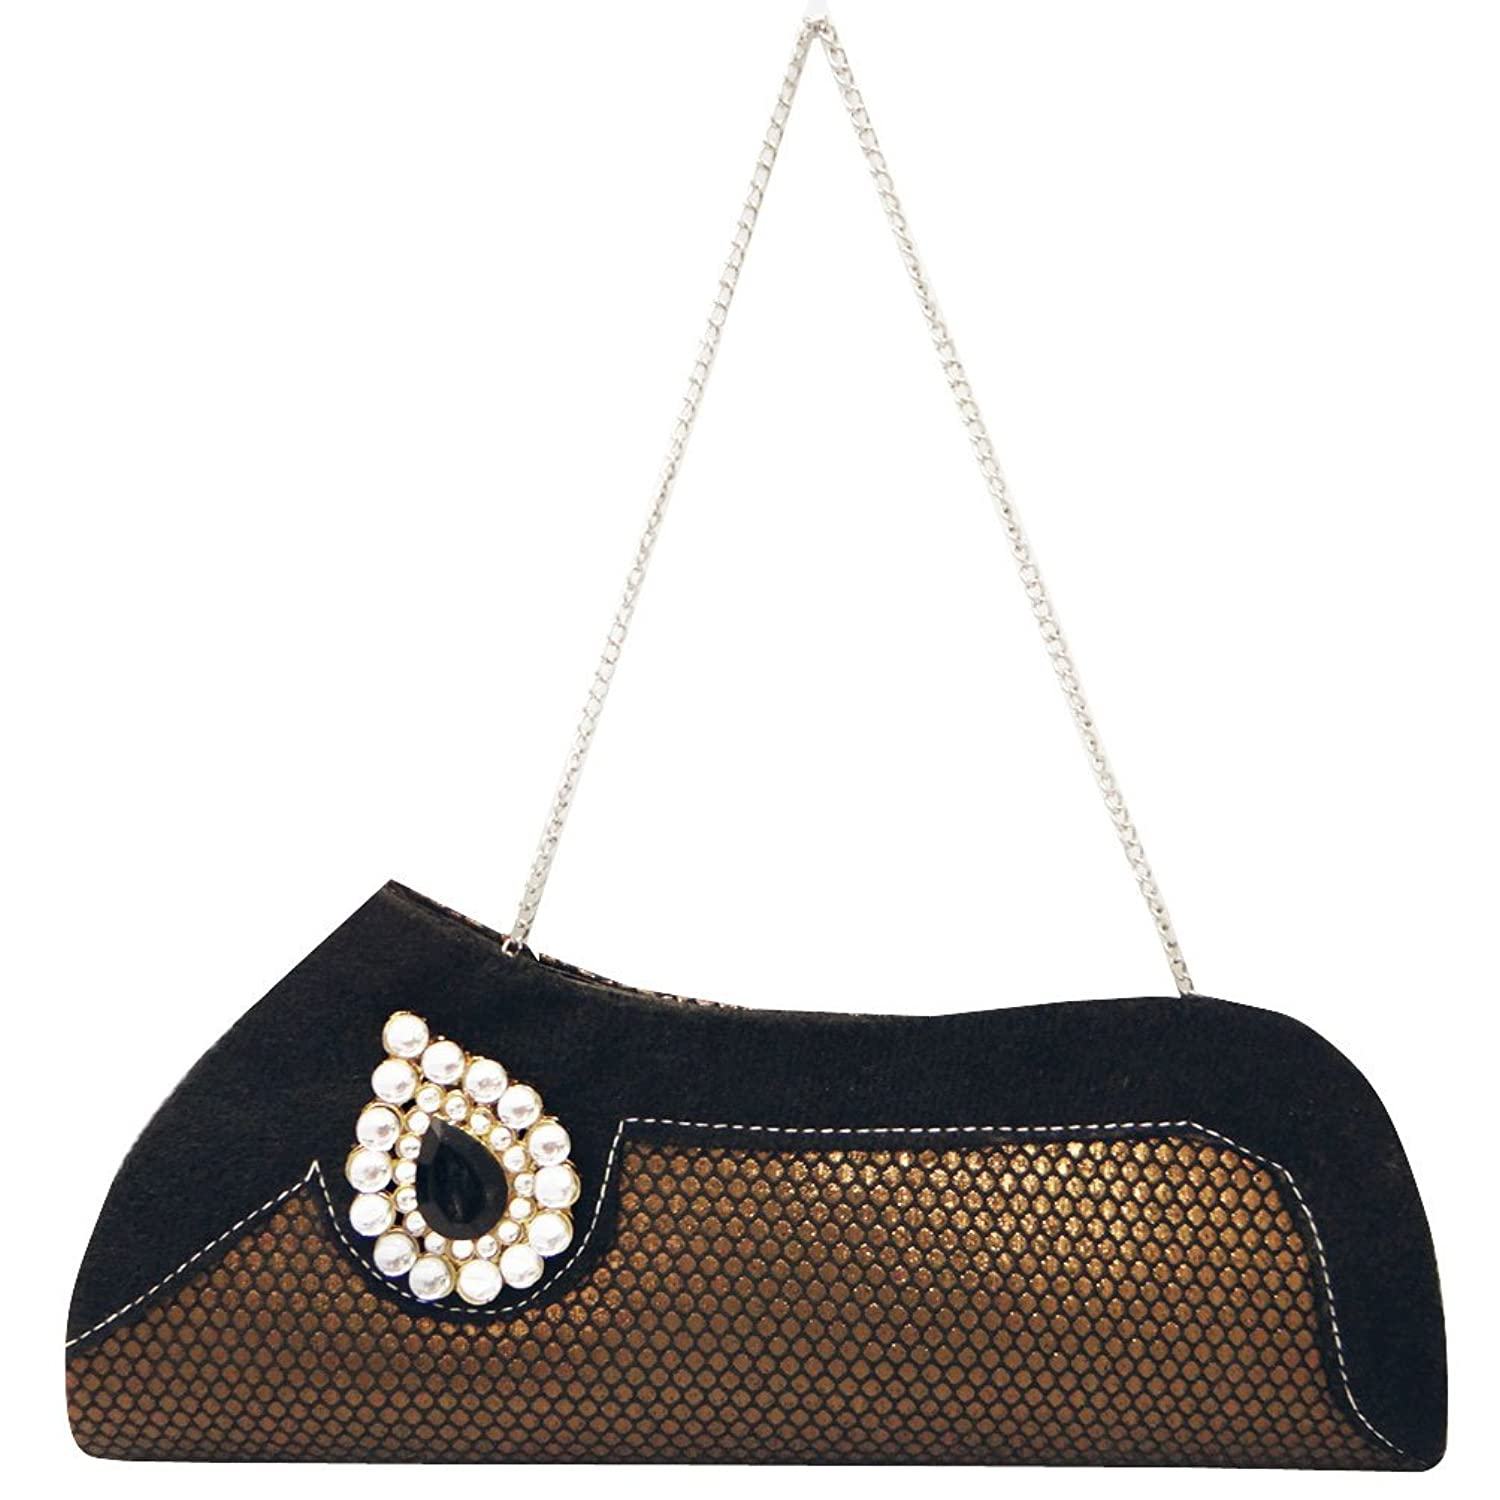 Beaded Black Clutch Faux Stone Prom Party Purse Indian Brocade Women Handbag